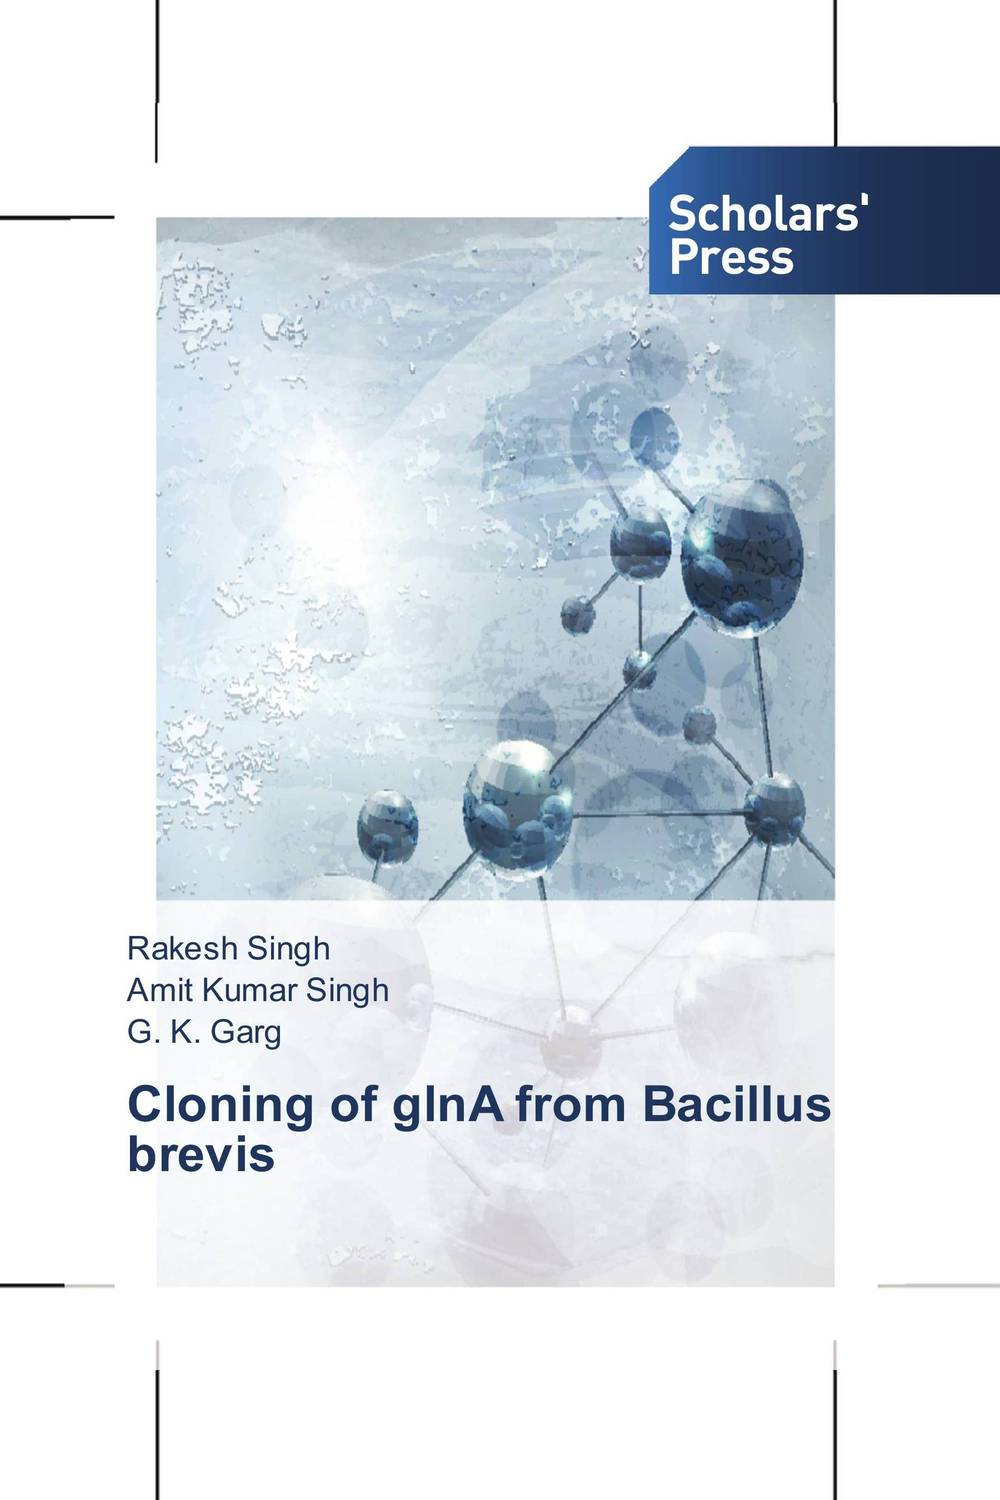 Cloning of glnA from Bacillus brevis rakesh singh amit kumar singh and g k garg cloning of glna from bacillus brevis